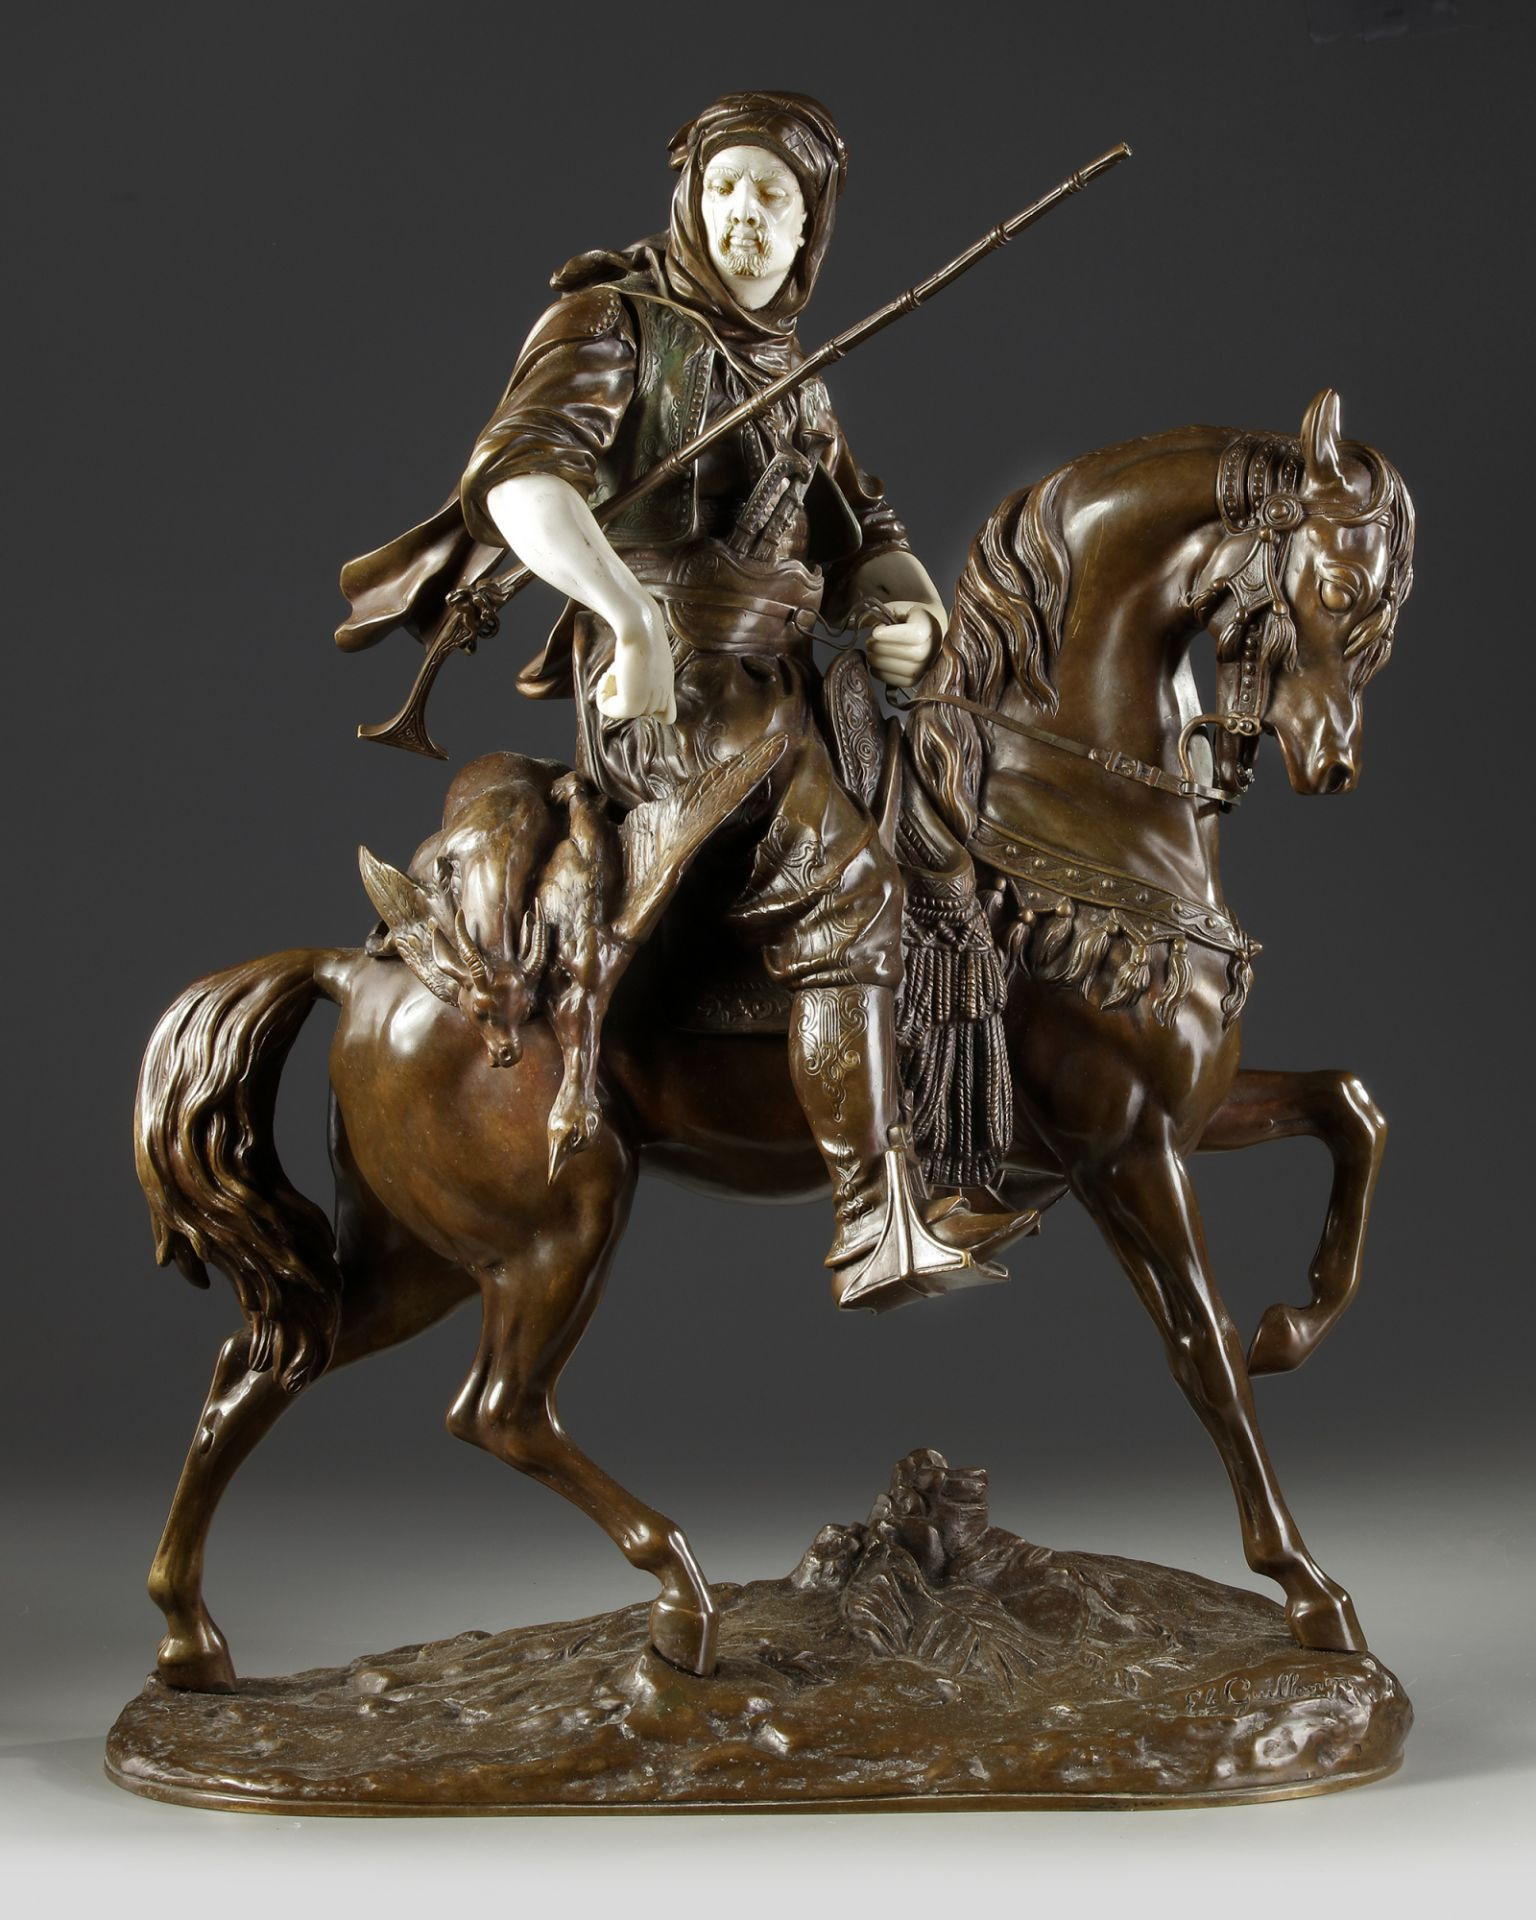 A SUPERB BRONZE SCULPTURE BY ALFRED BARYE AND EMILE GUILLEMIN, 19TH CENTURY